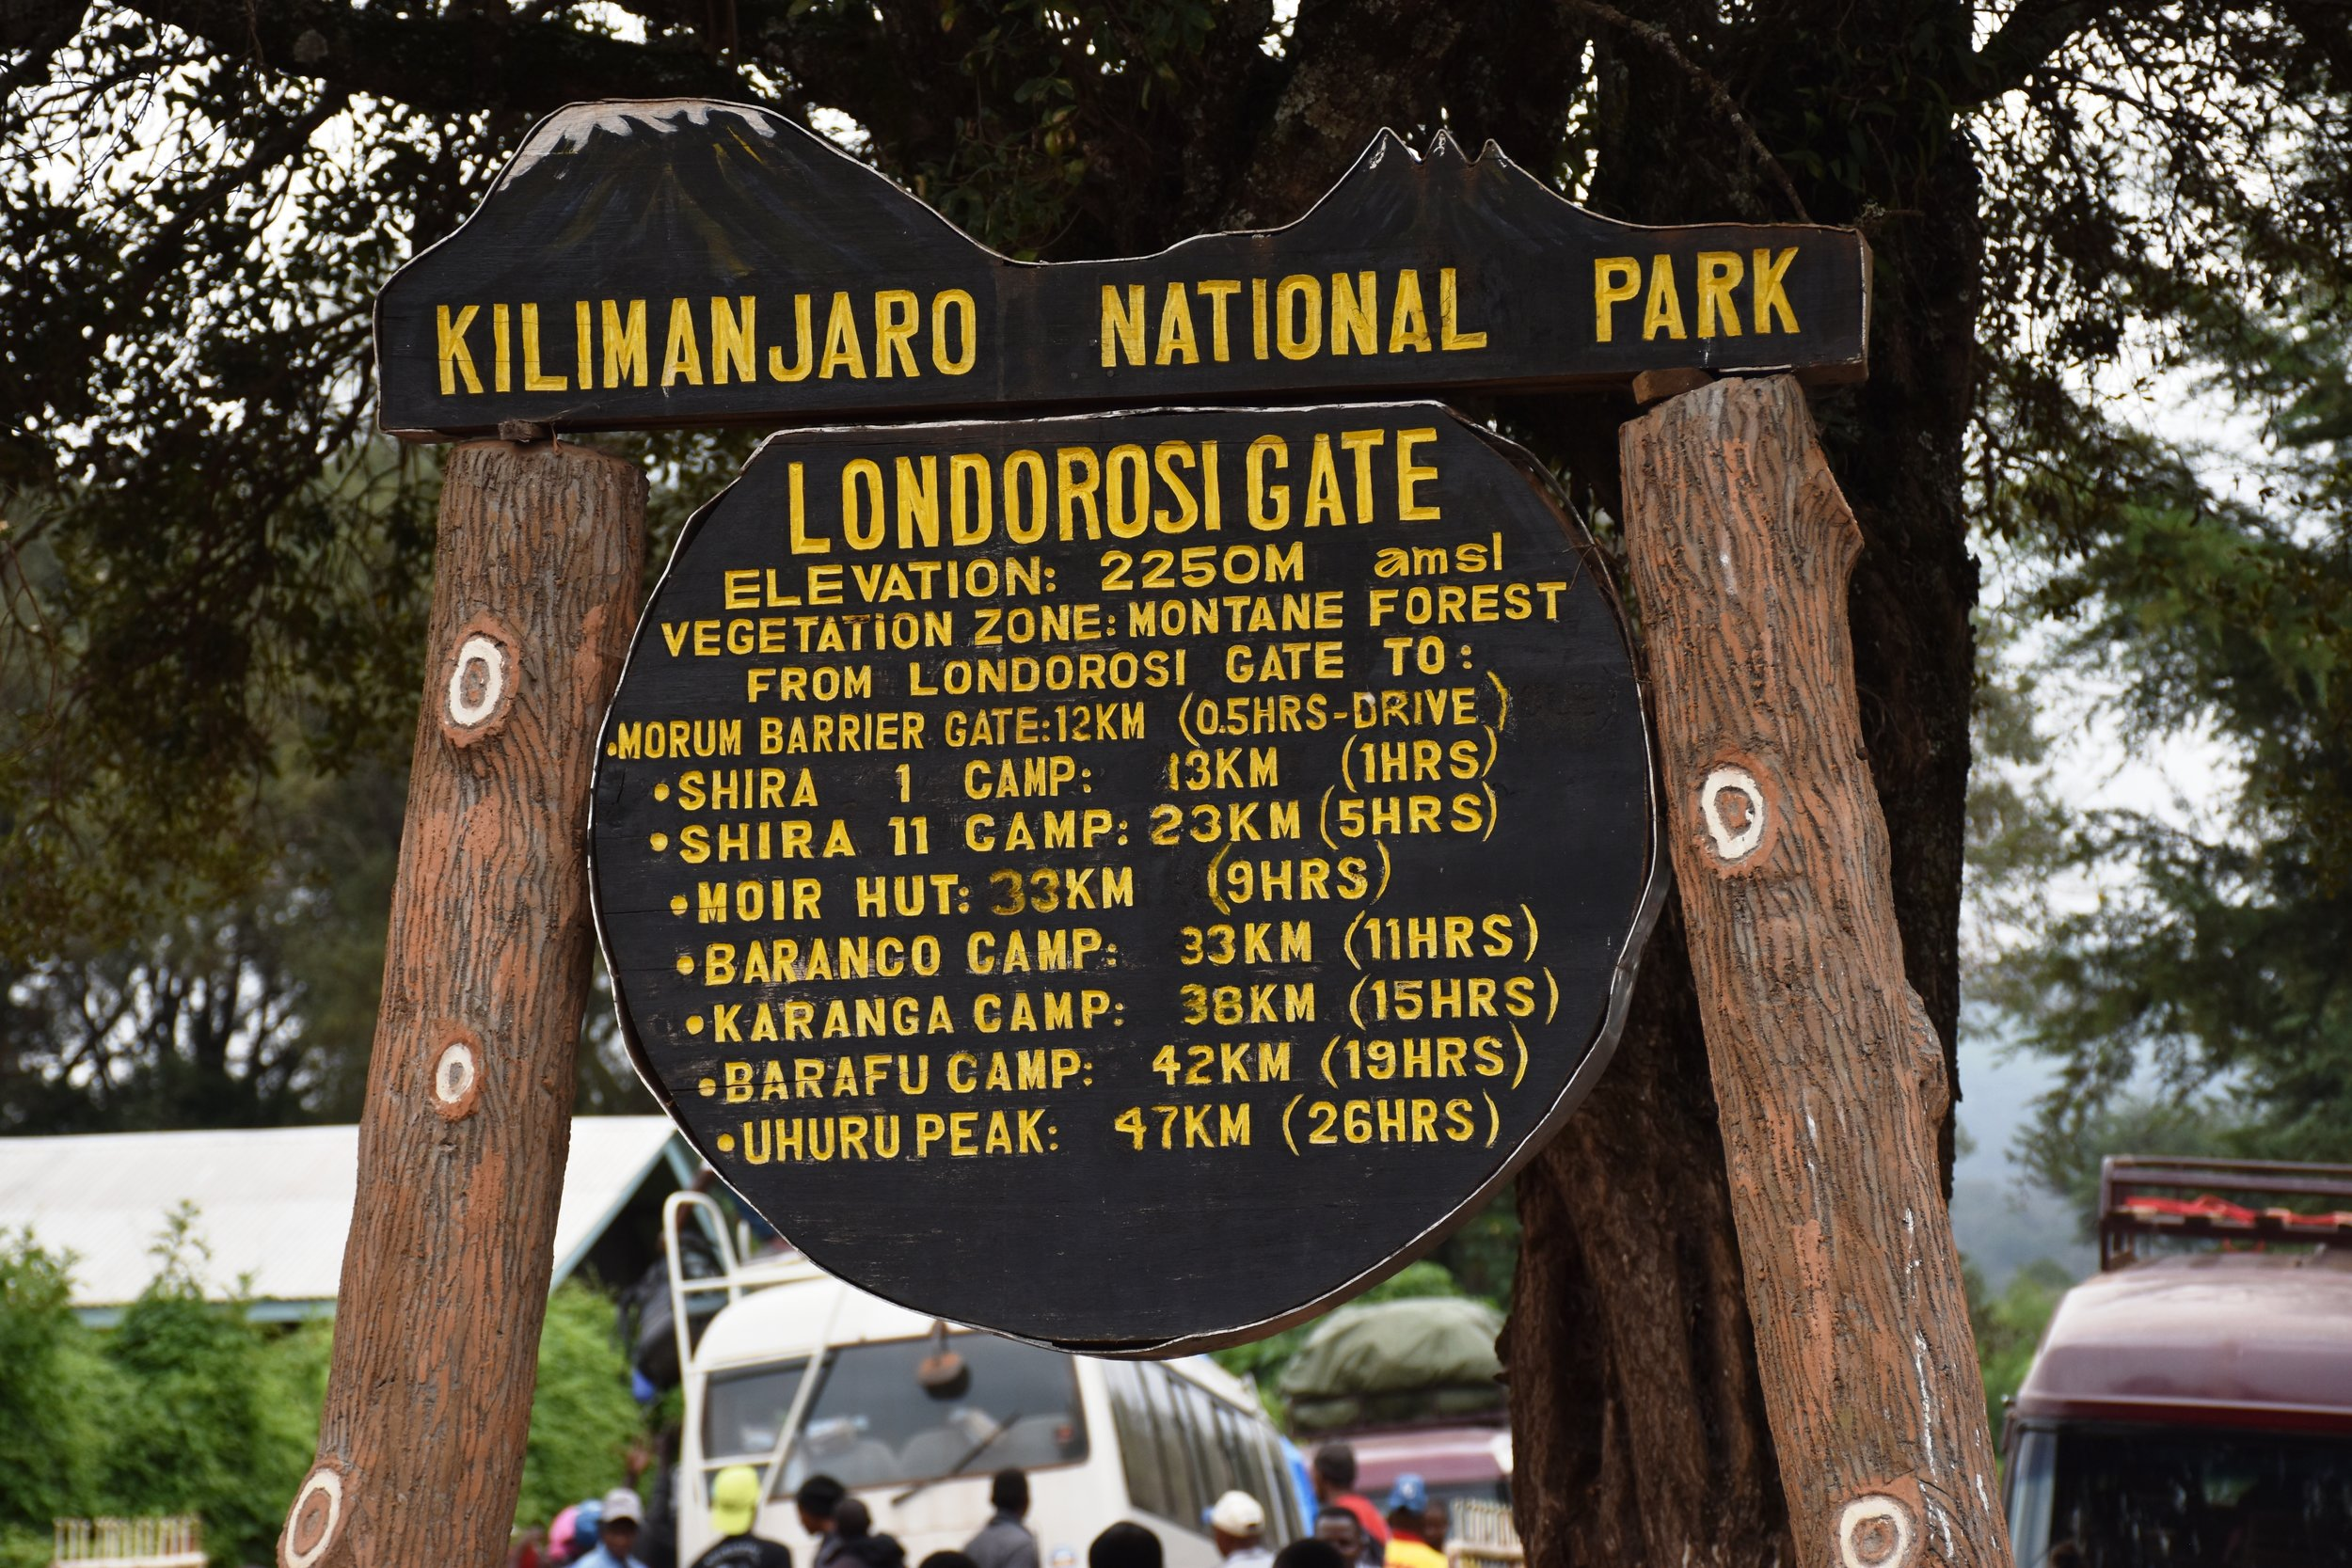 Starting gate for Lemosho Route